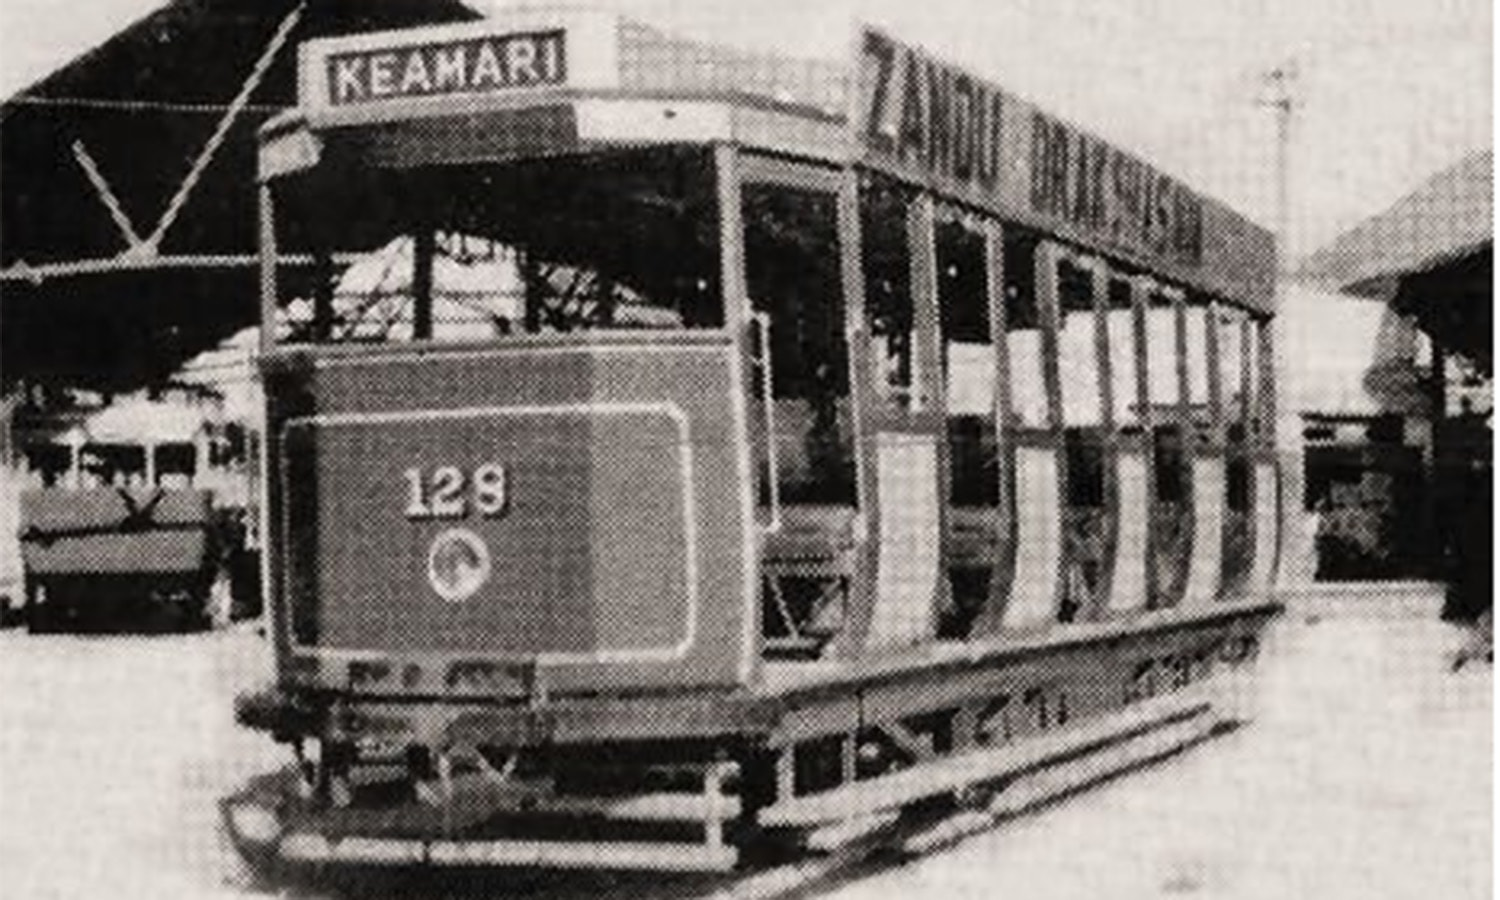 A tram station in Keamari in the 1940s.